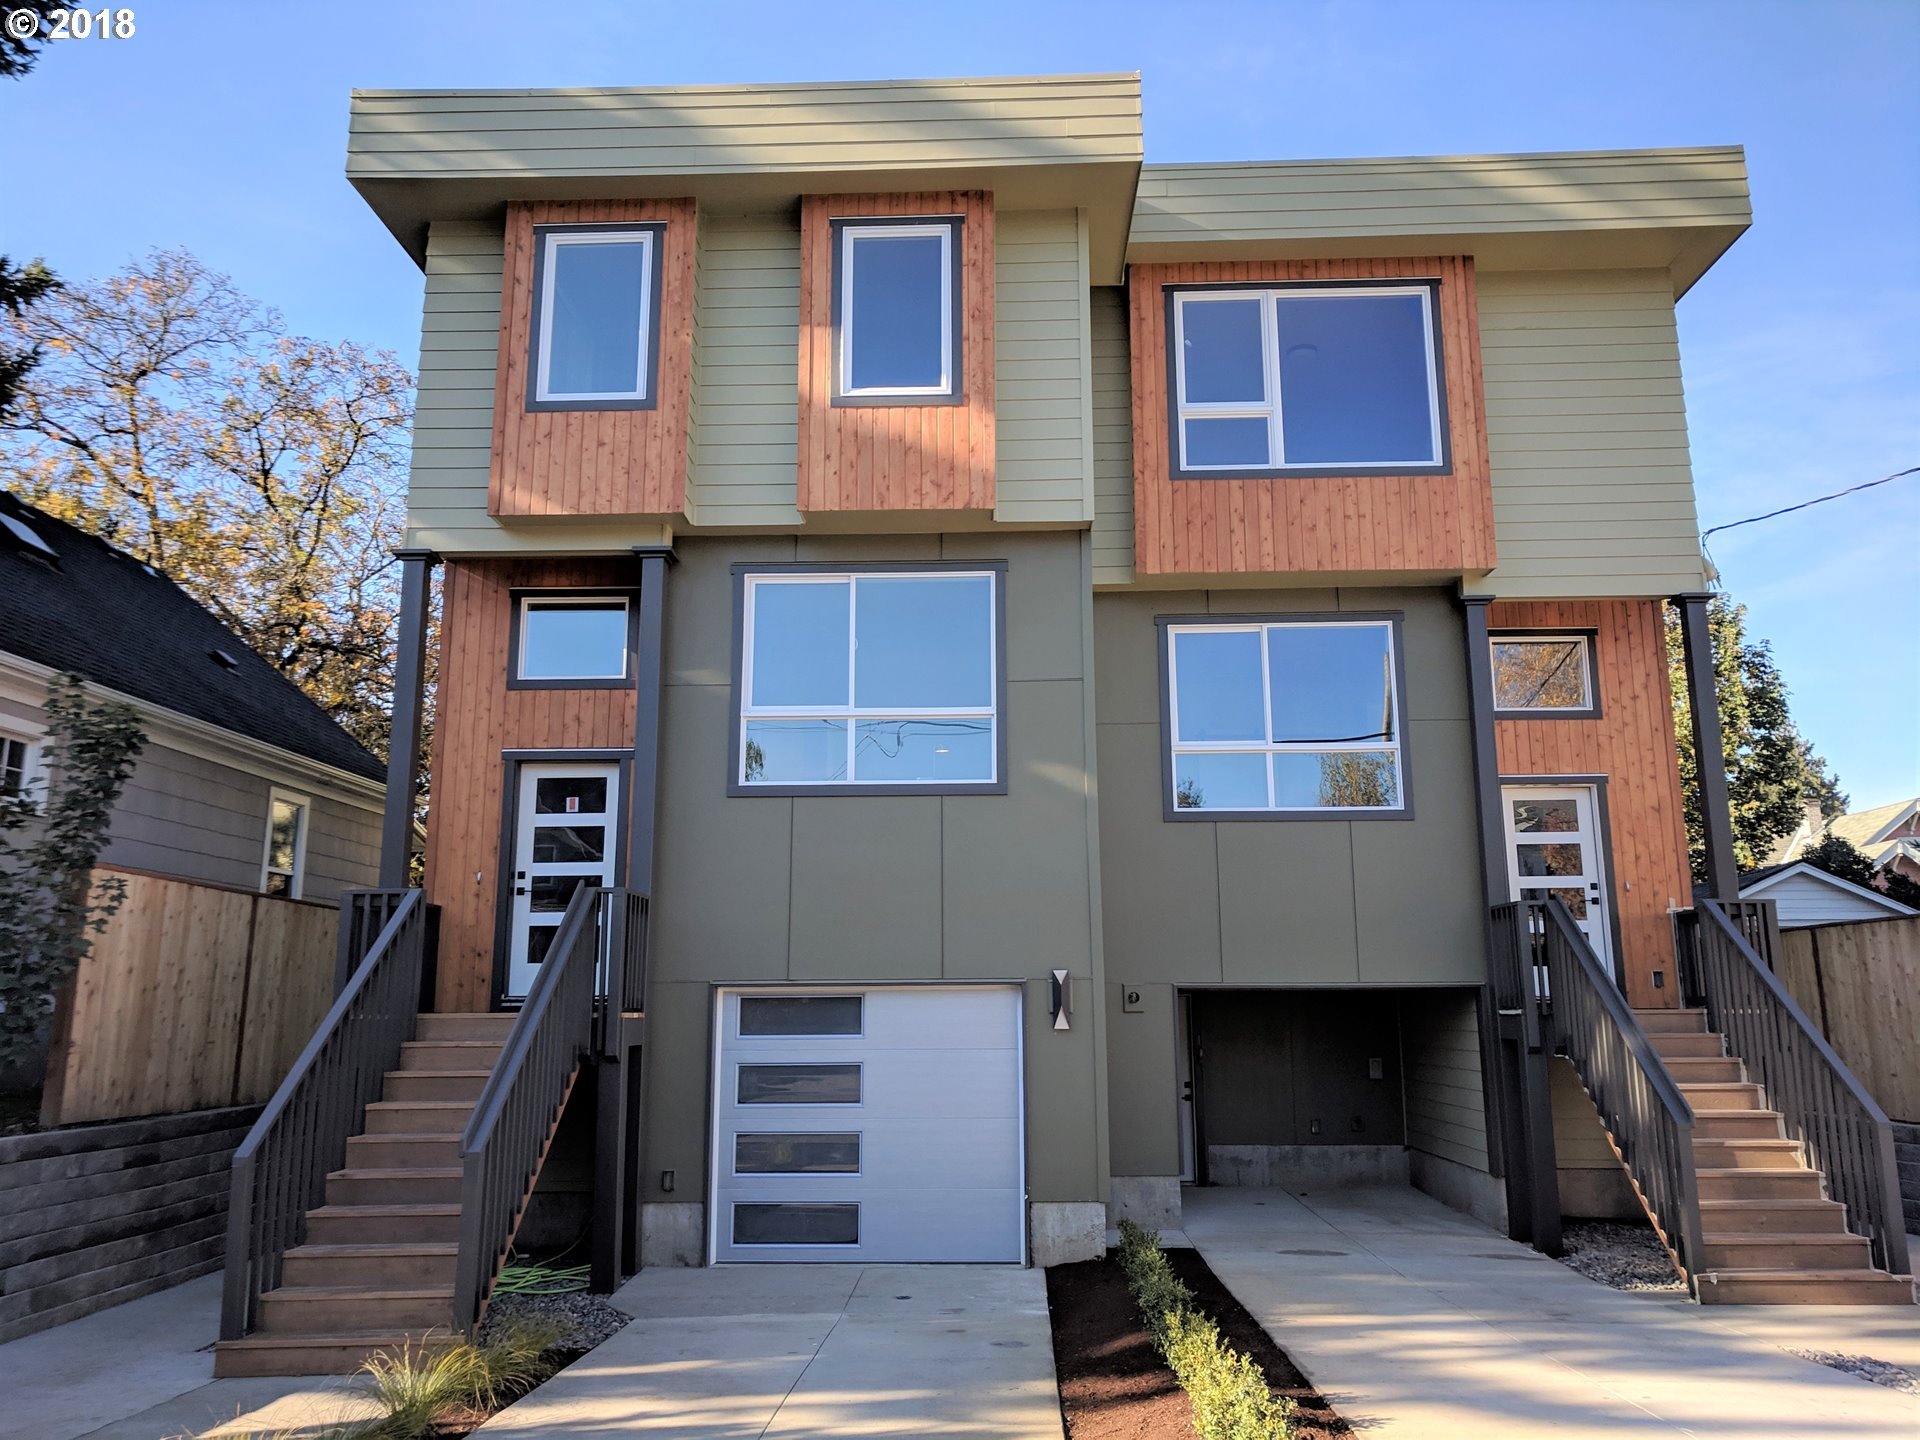 Brand new townhouse style condo with 4 bedrooms and 3 and one half bathrooms. Light and bright with tall ceilings and modern finishes. Approx 2800 square feet of living space with guest quarters in the basement. Over-sized deck with outdoor fireplace. Great for entertaining. Excellent location close to shops, public transportation, walker and biker friendly. [Home Energy Score = 6. HES Report at https://rpt.greenbuildingregistry.com/hes/OR10177053-20181116]